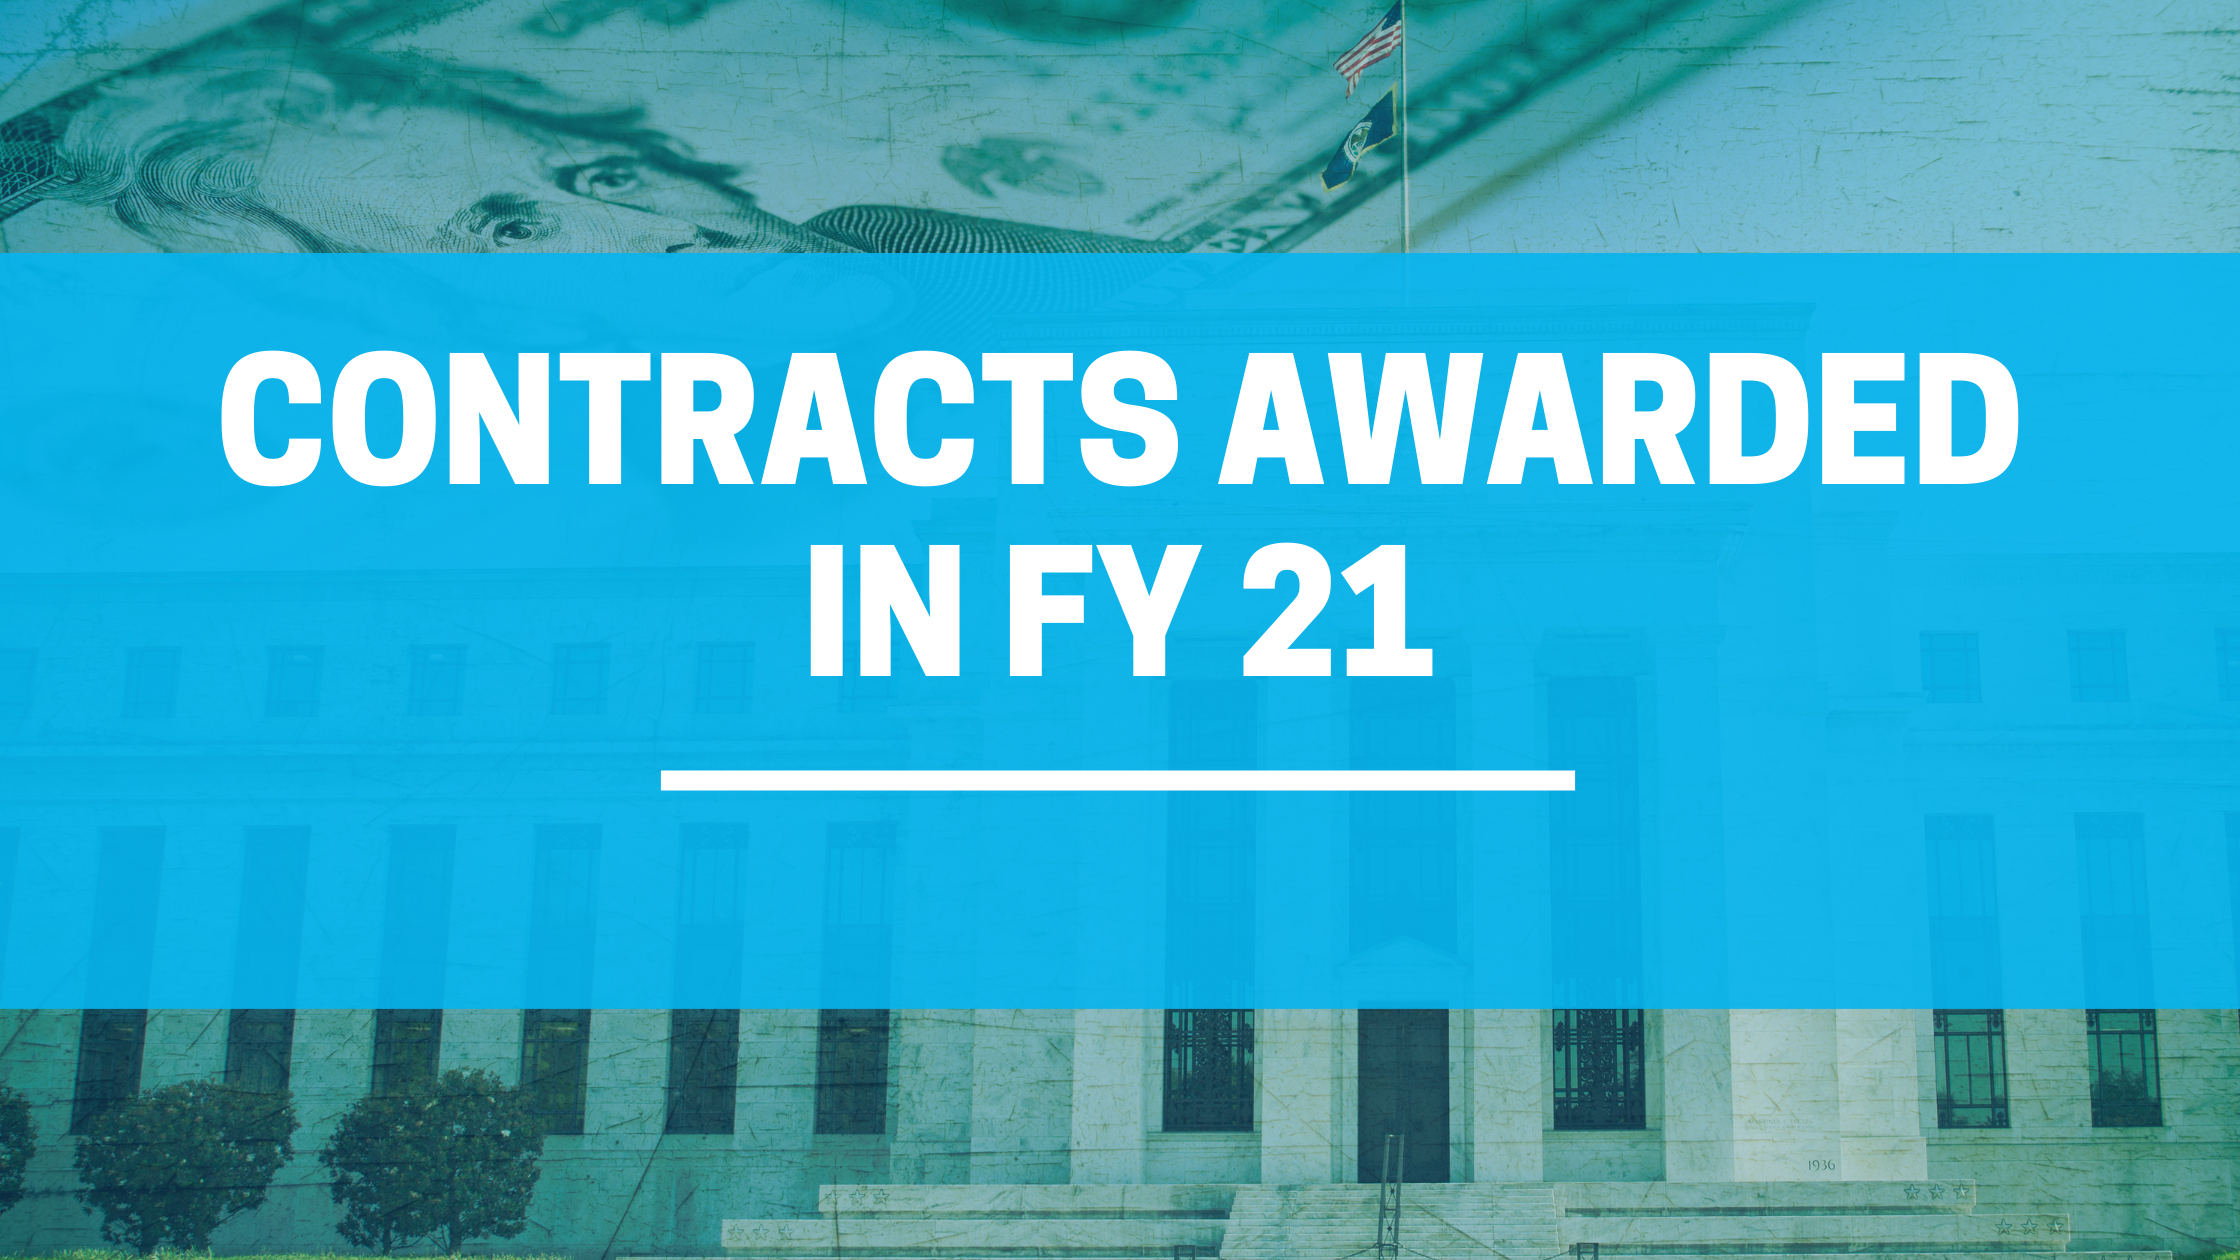 contracts awarded in fy21